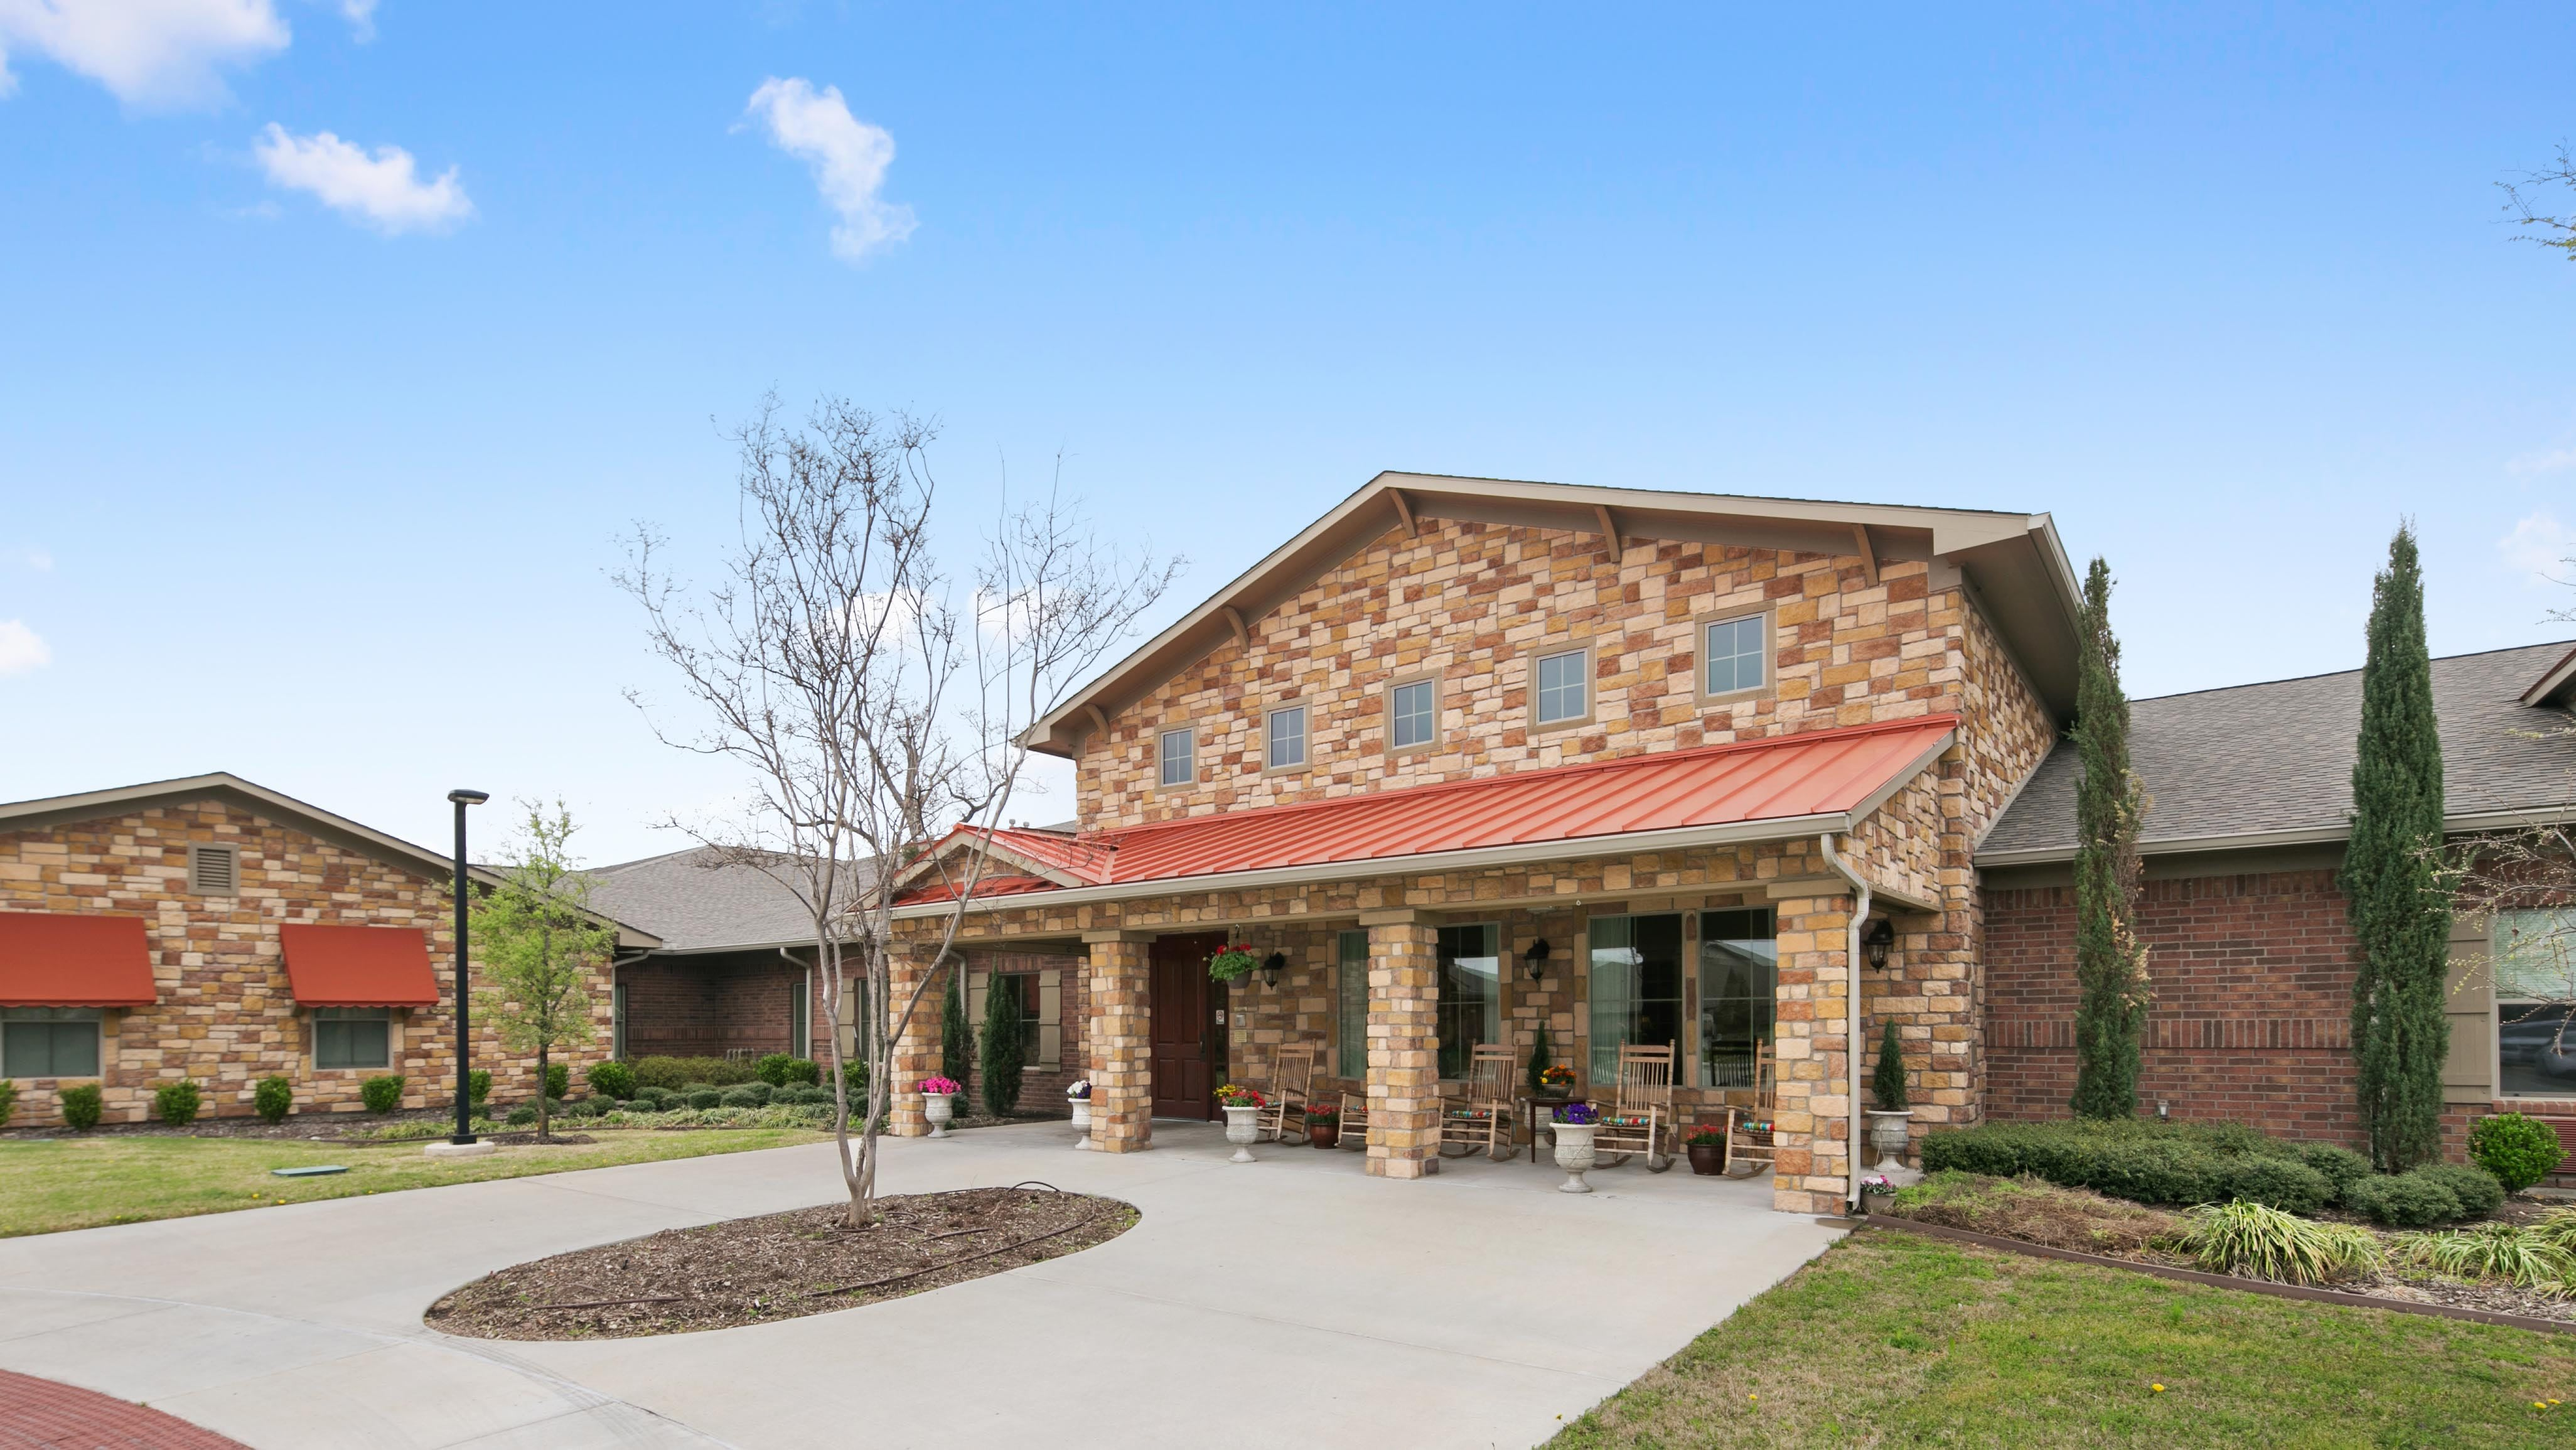 Photo 1 of River Oaks Assisted Living & Memory Care